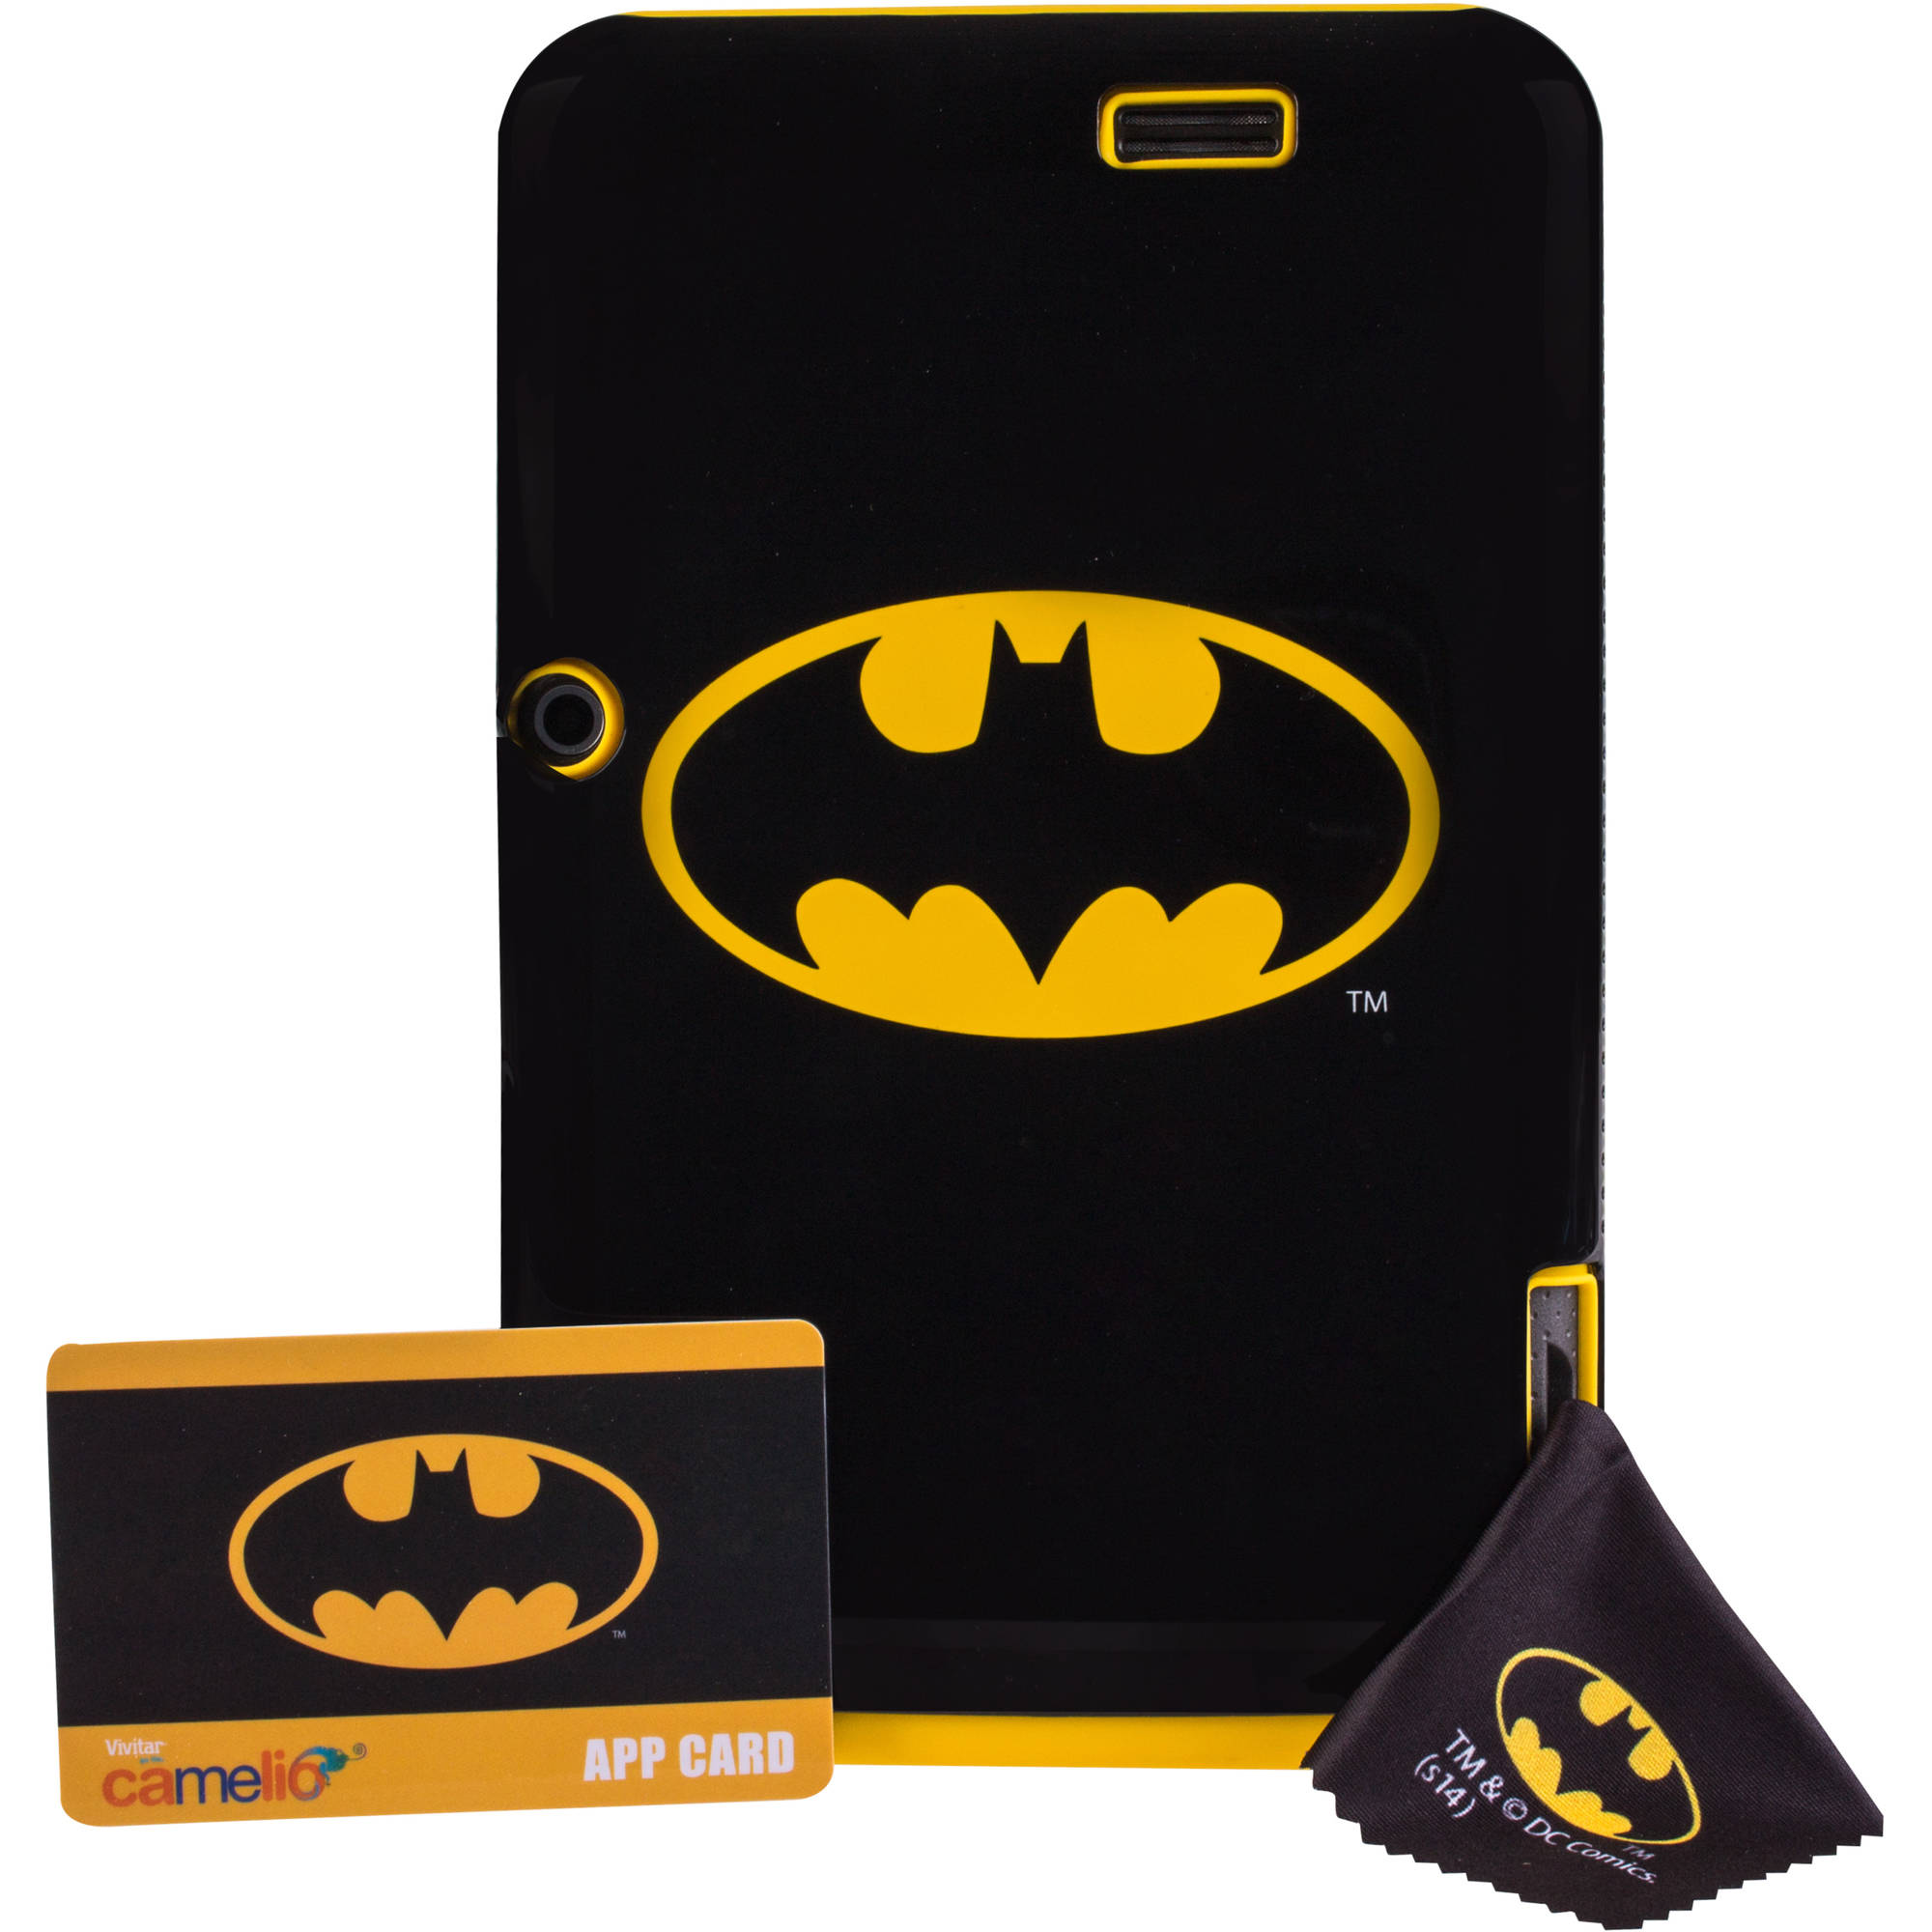 "Vivitar Camelio with WiFi 7"" Touchscreen Tablet PC Featuring Android 4.1 (Jelly Bean) Operating System, Batman Bundle"